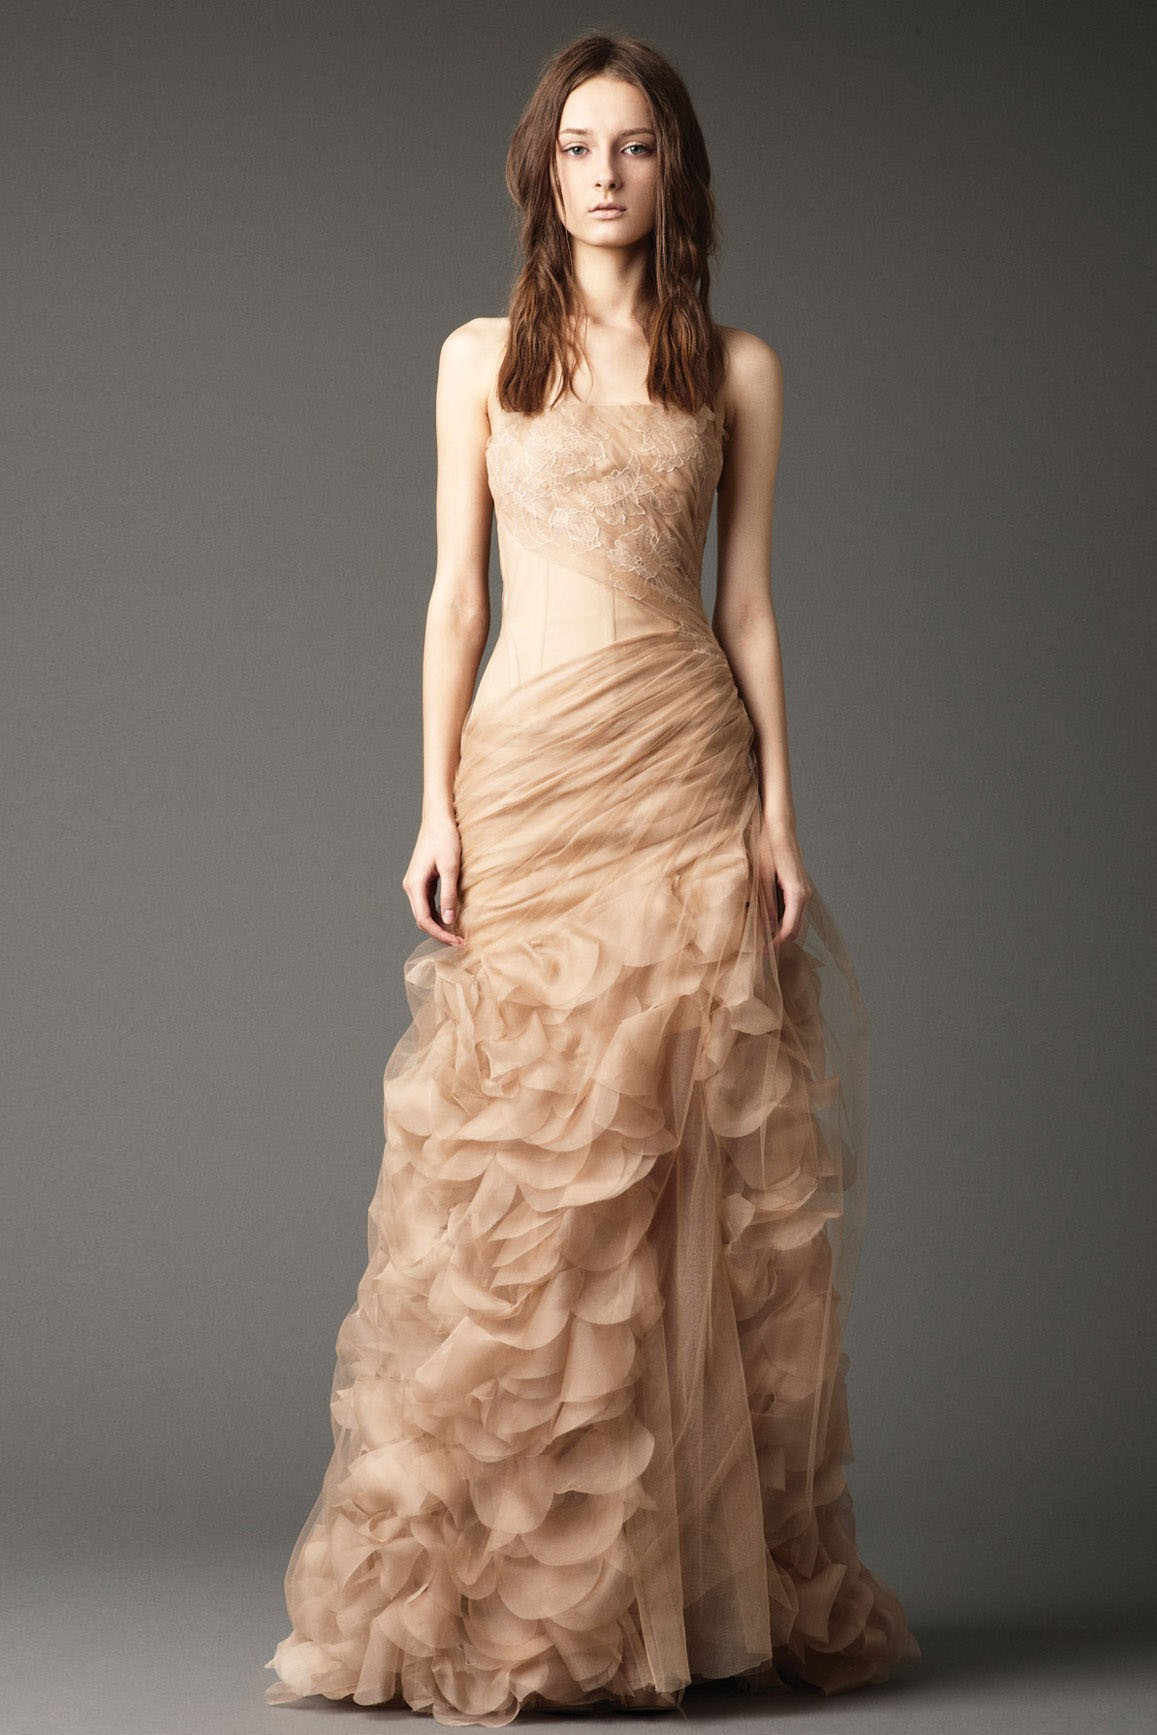 Champagne colored dresses dressed up girl for Champagne color wedding dresses